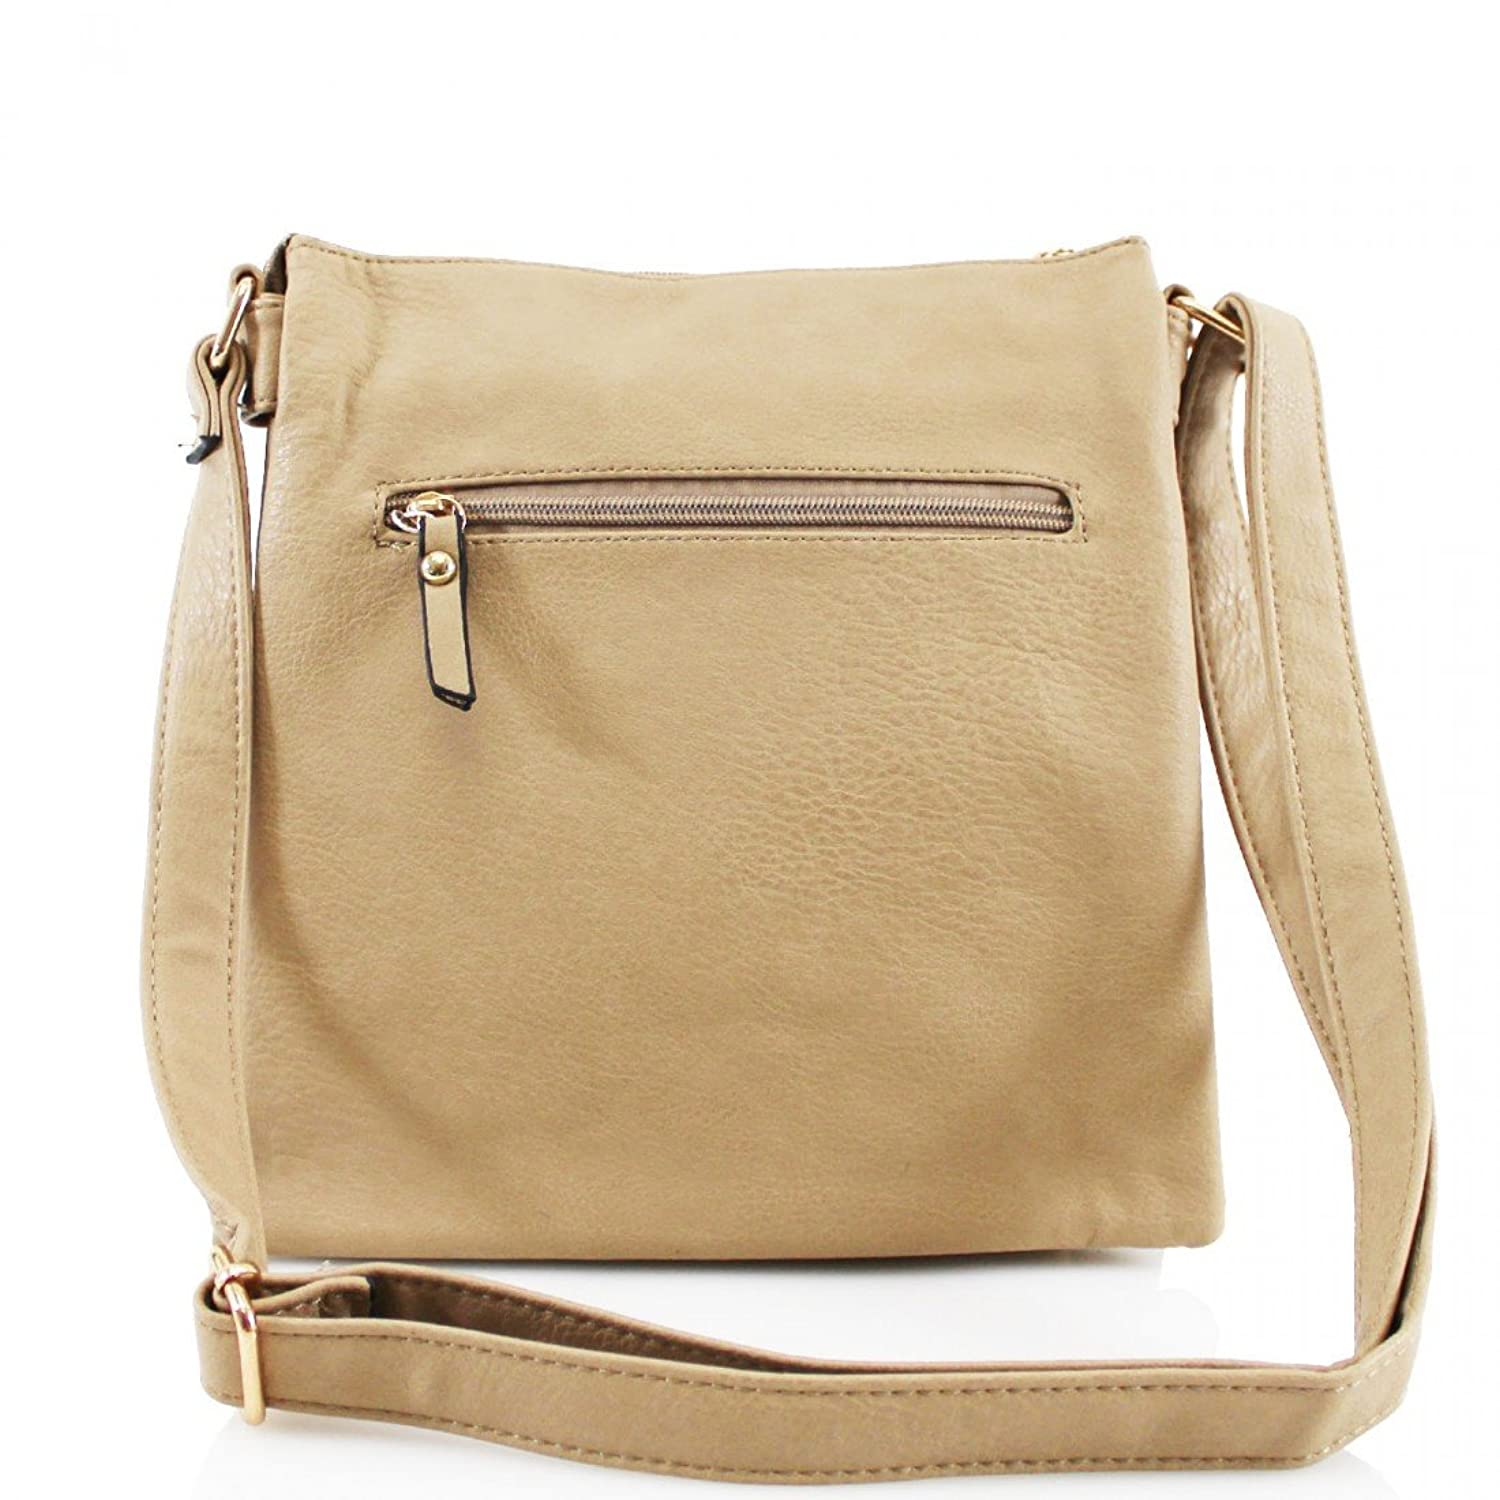 Womens Multi Compartment Top Zip Opening Messenger Shoulder Cross Body Bag  (Apricot): Amazon.co.uk: Shoes & Bags